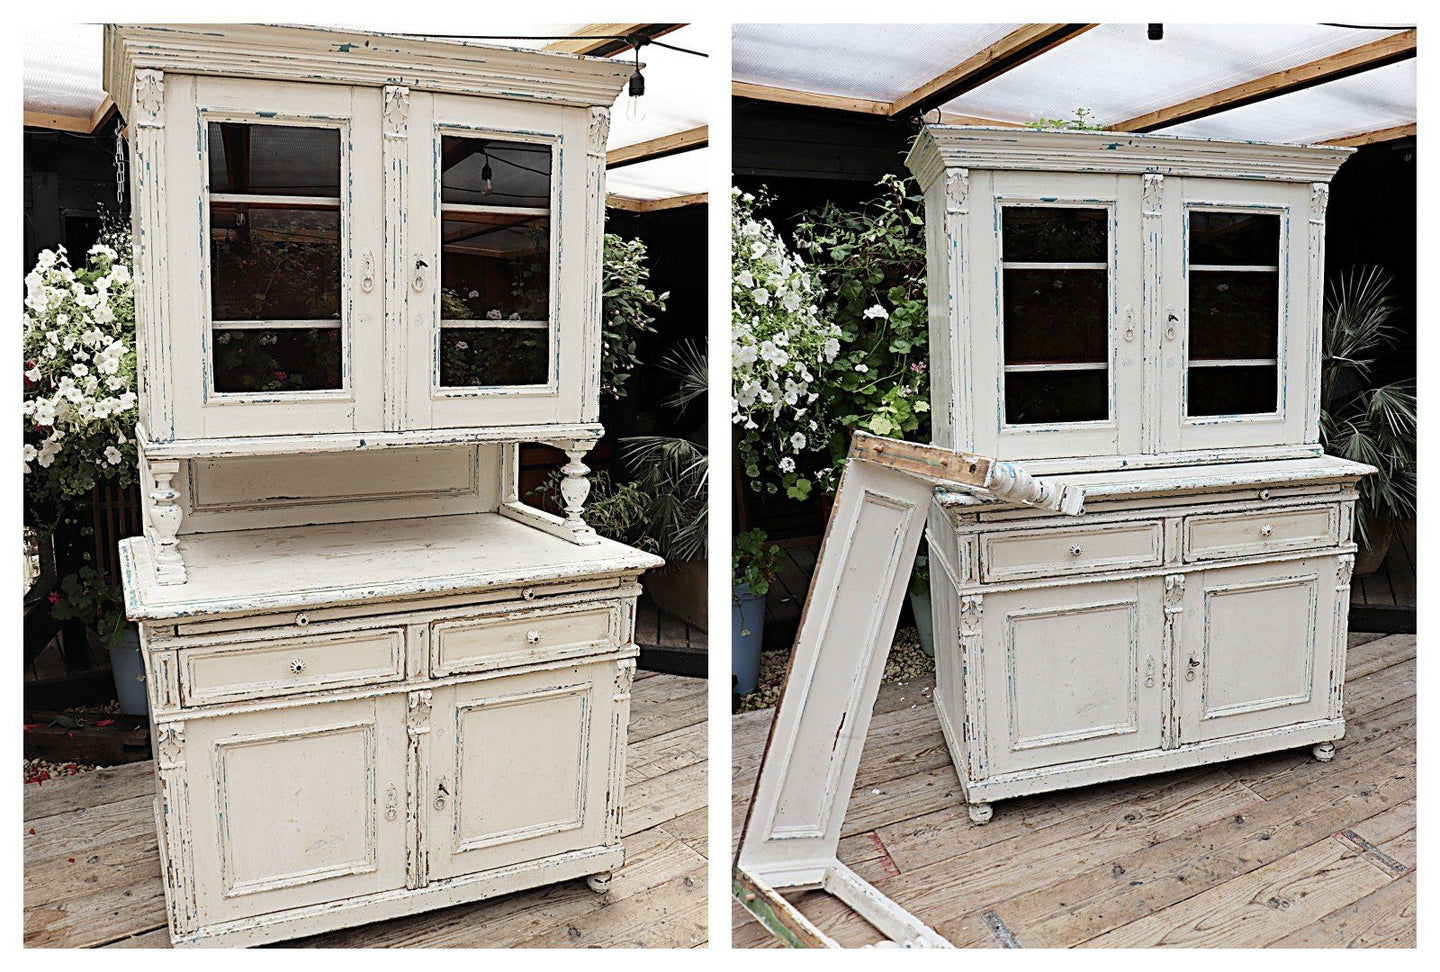 💕 FABULOUS OLD VICTORIAN 2 PIECE PINE/WHITE PAINTED DRESSER/ CUPBOARD 💕 - oldpineshop.co.uk